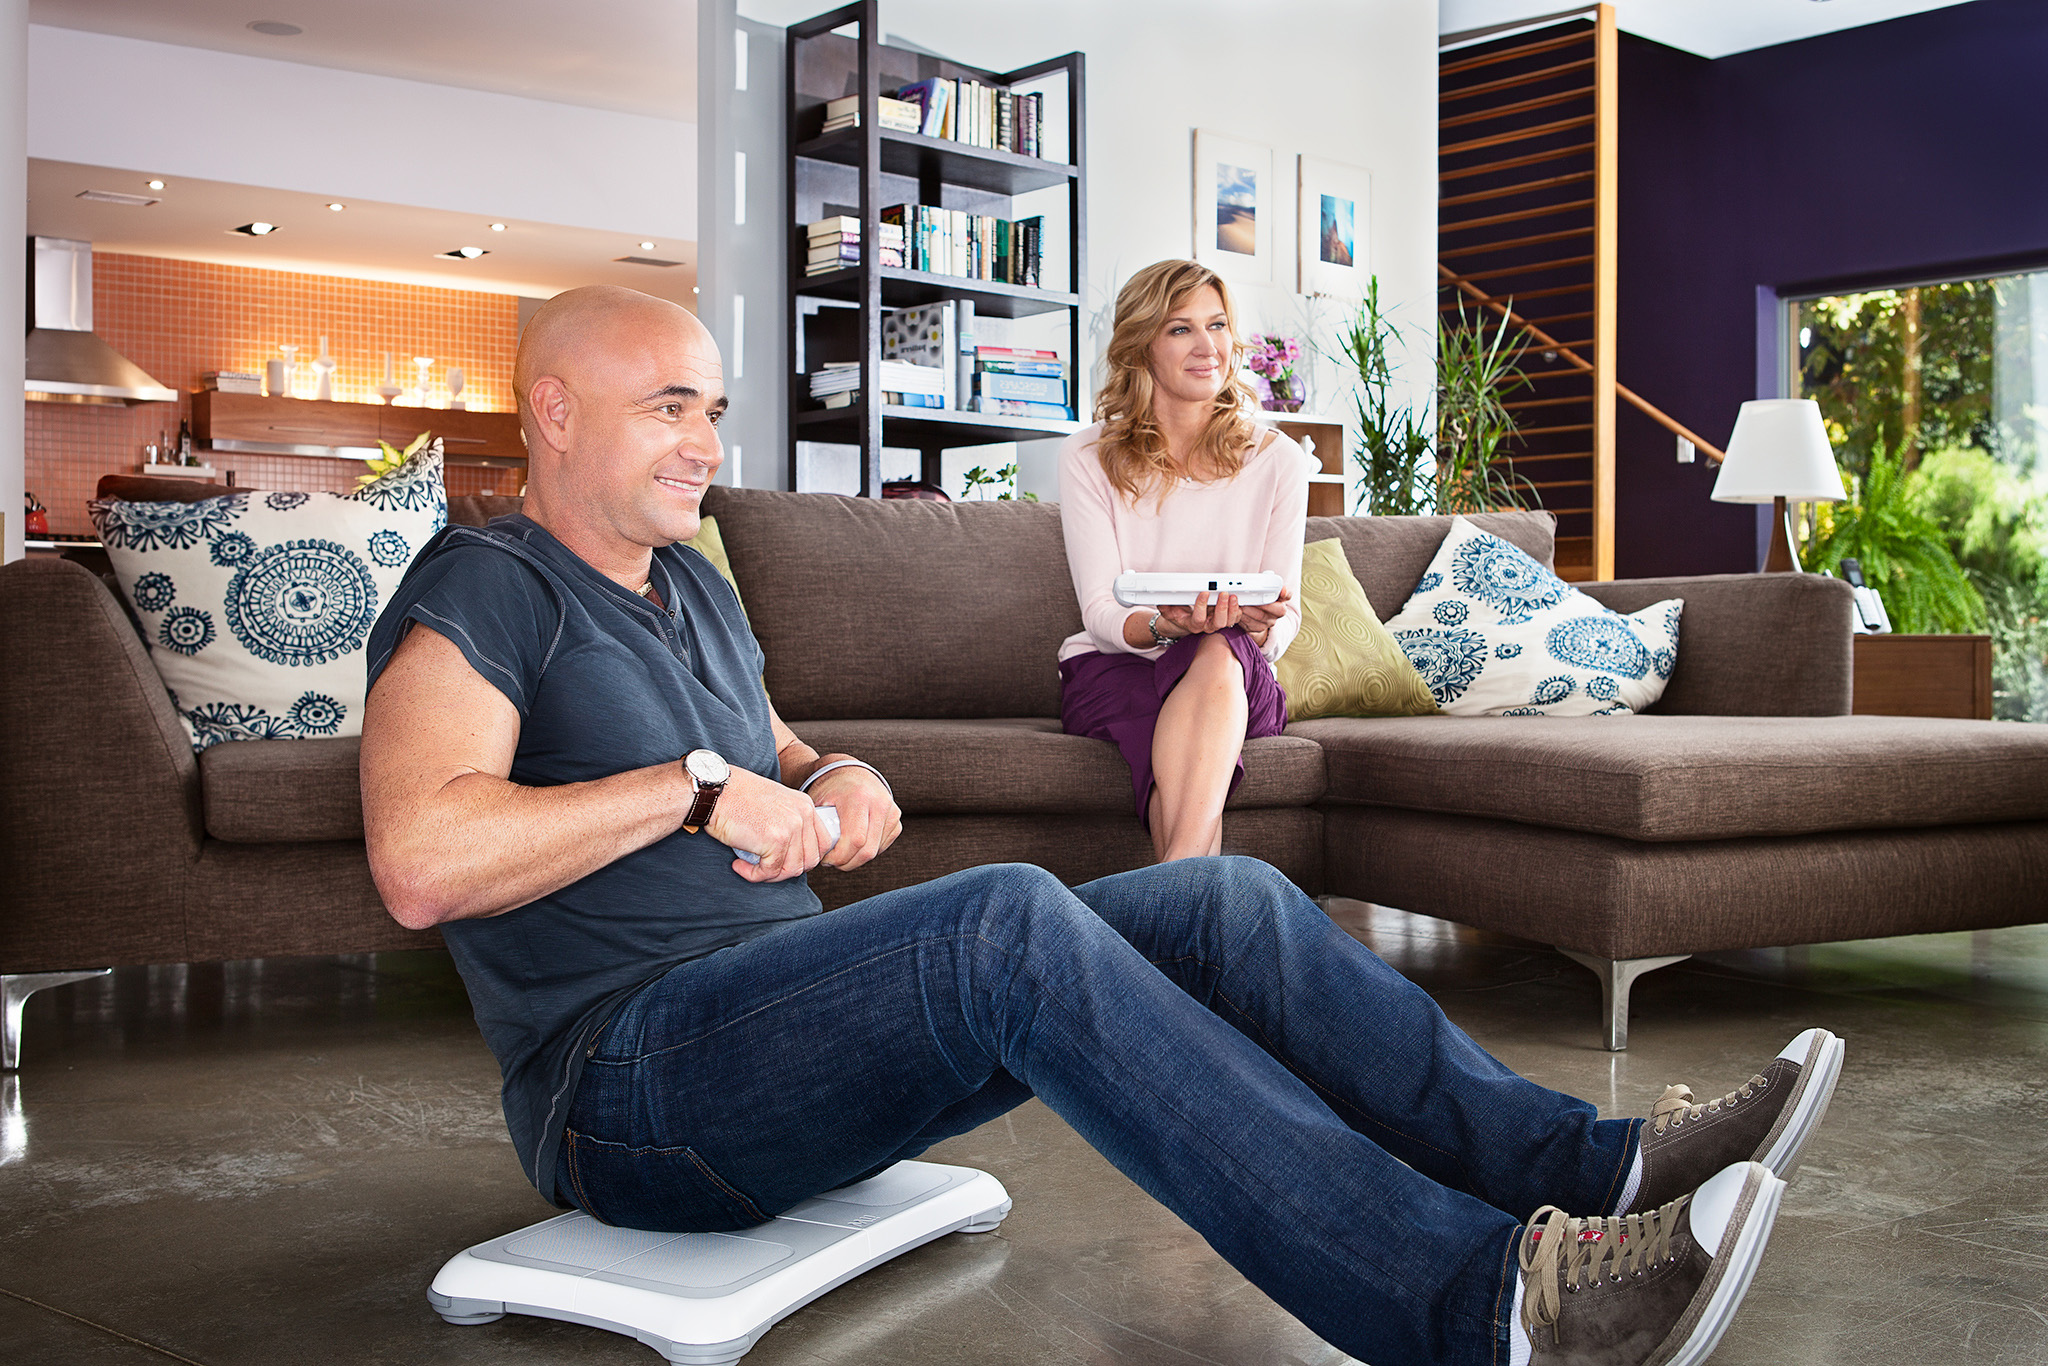 ©TomWoollard_Nintendo_WiiU_Steffi-Graf_Andre-Agassi-commercial-lifestyle-playing-fitness-game-at-home.jpg